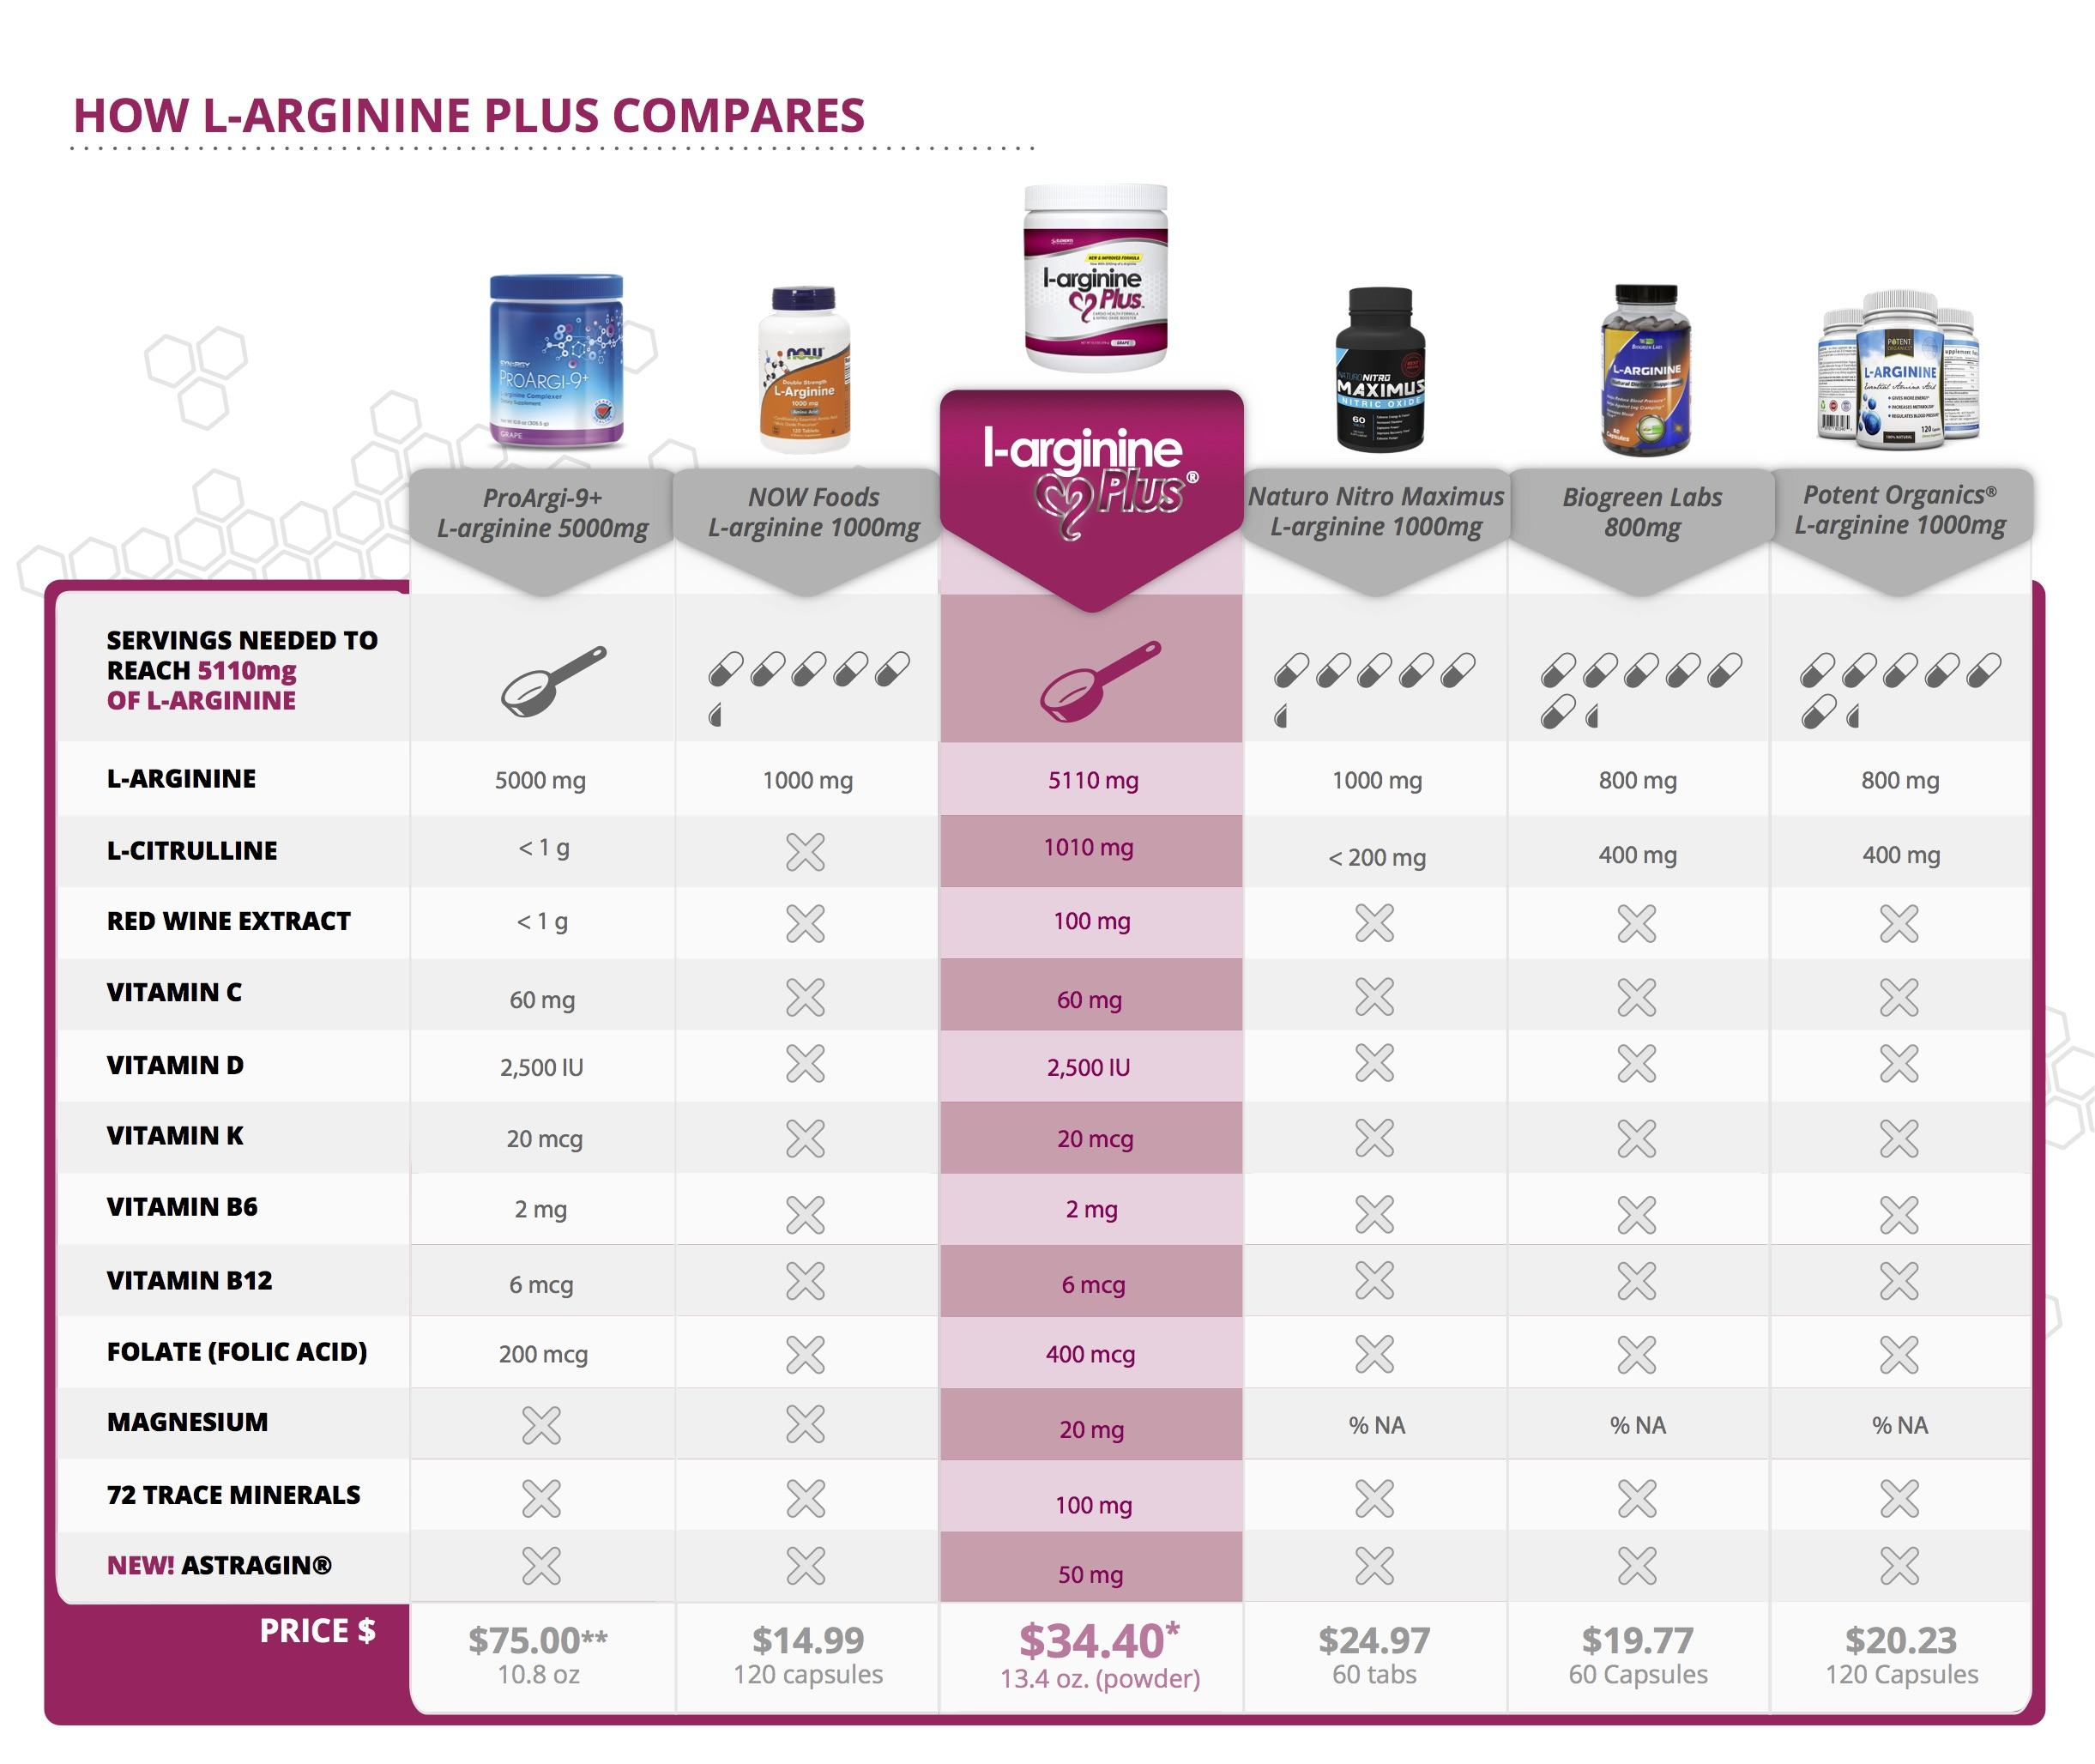 L-arginine Plus Compared to Other L-arginine supplements